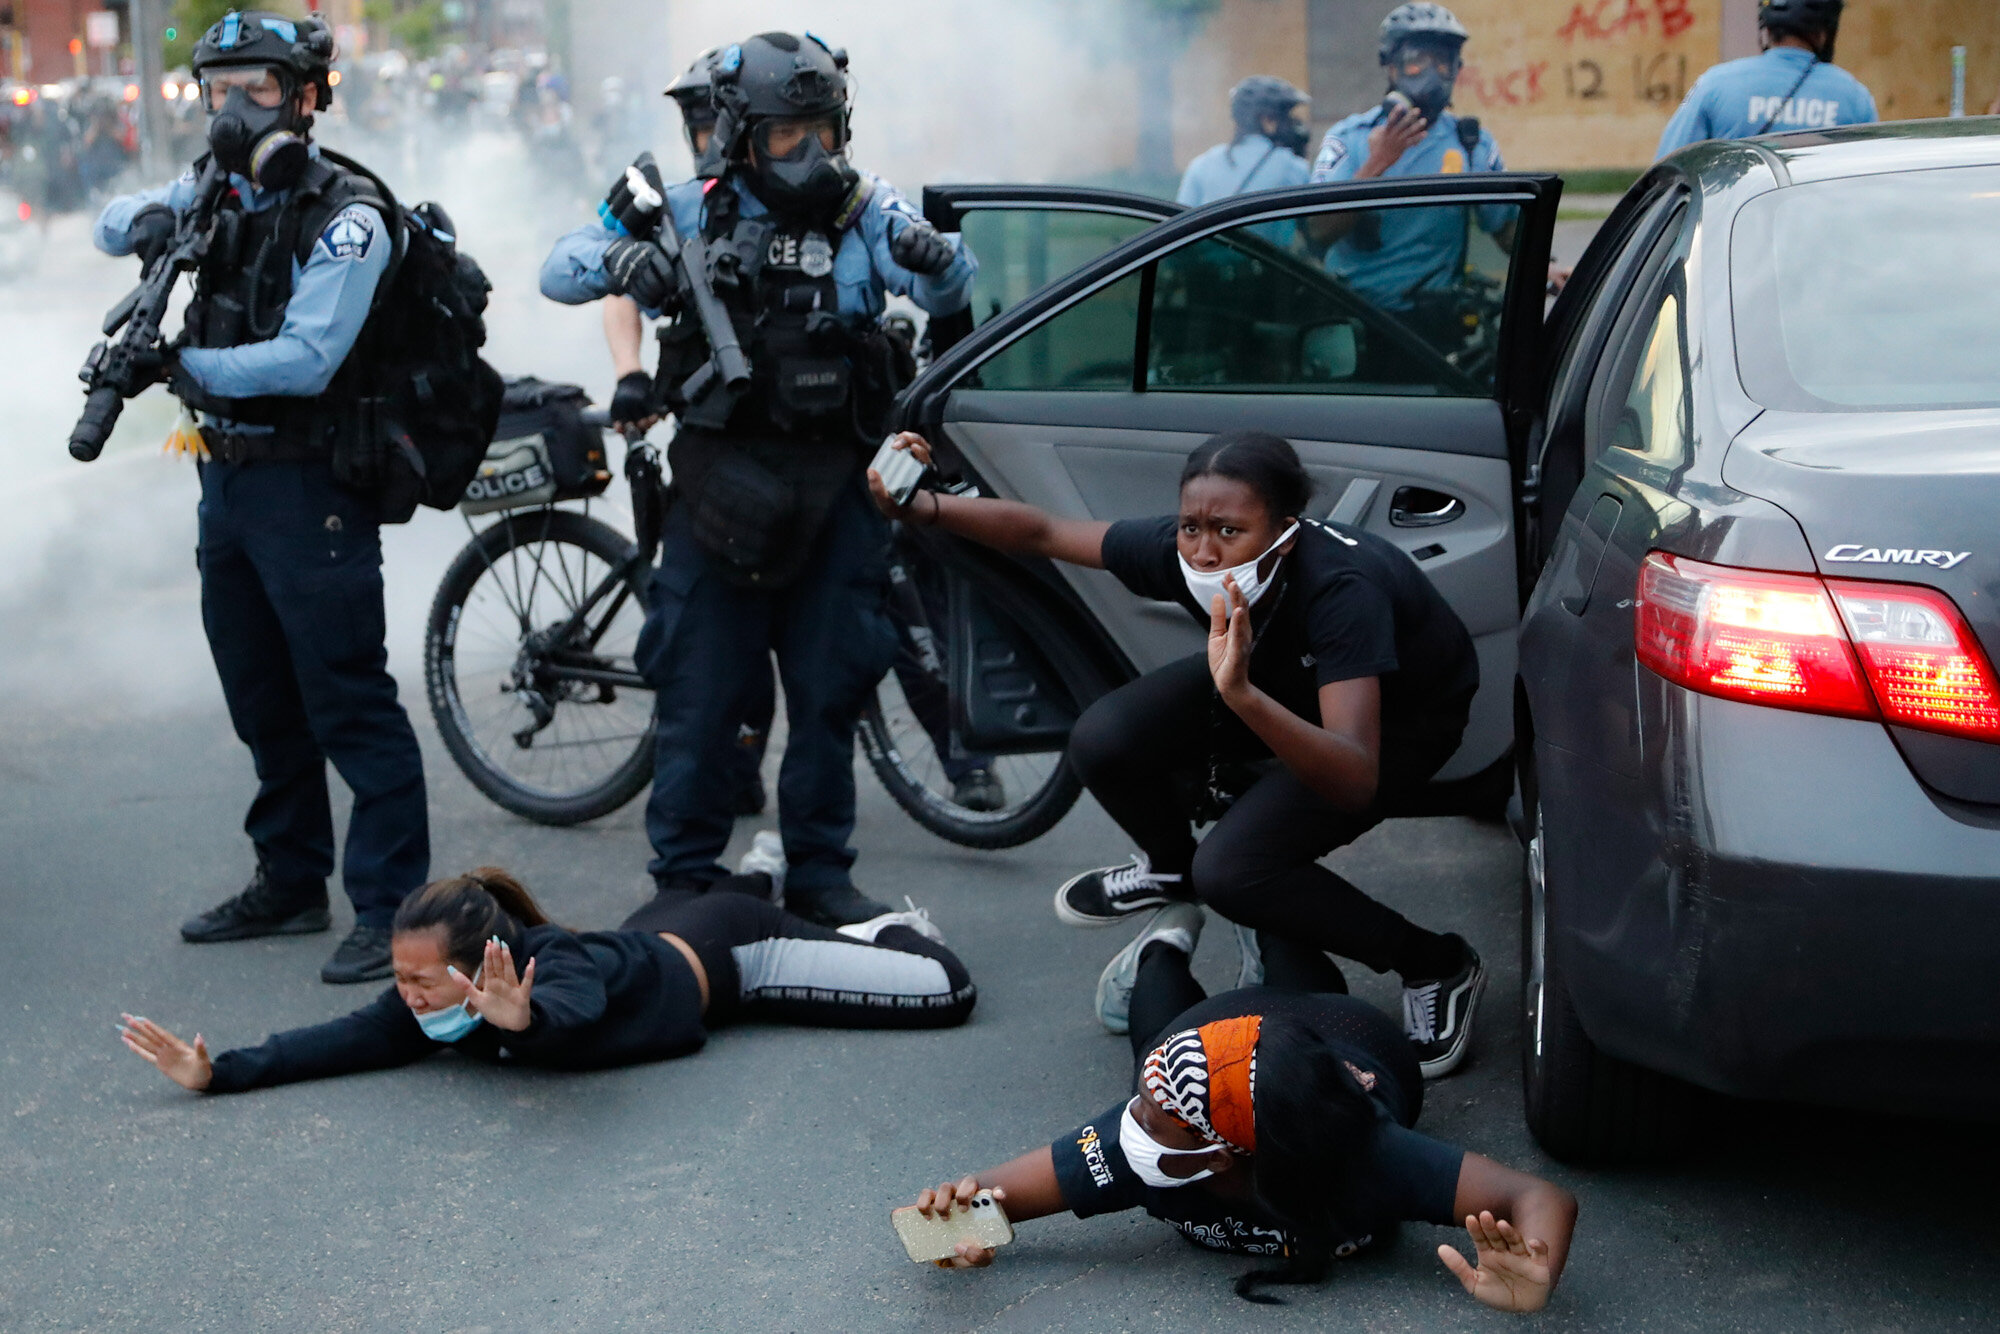 Motorists are ordered to the ground from their vehicle by police on May 31, 2020, during a protest in Minneapolis over the death of George Floyd, a Black man who died after a white Minneapolis police officer pressed a knee into his neck for several minutes. (AP Photo/John Minchillo)